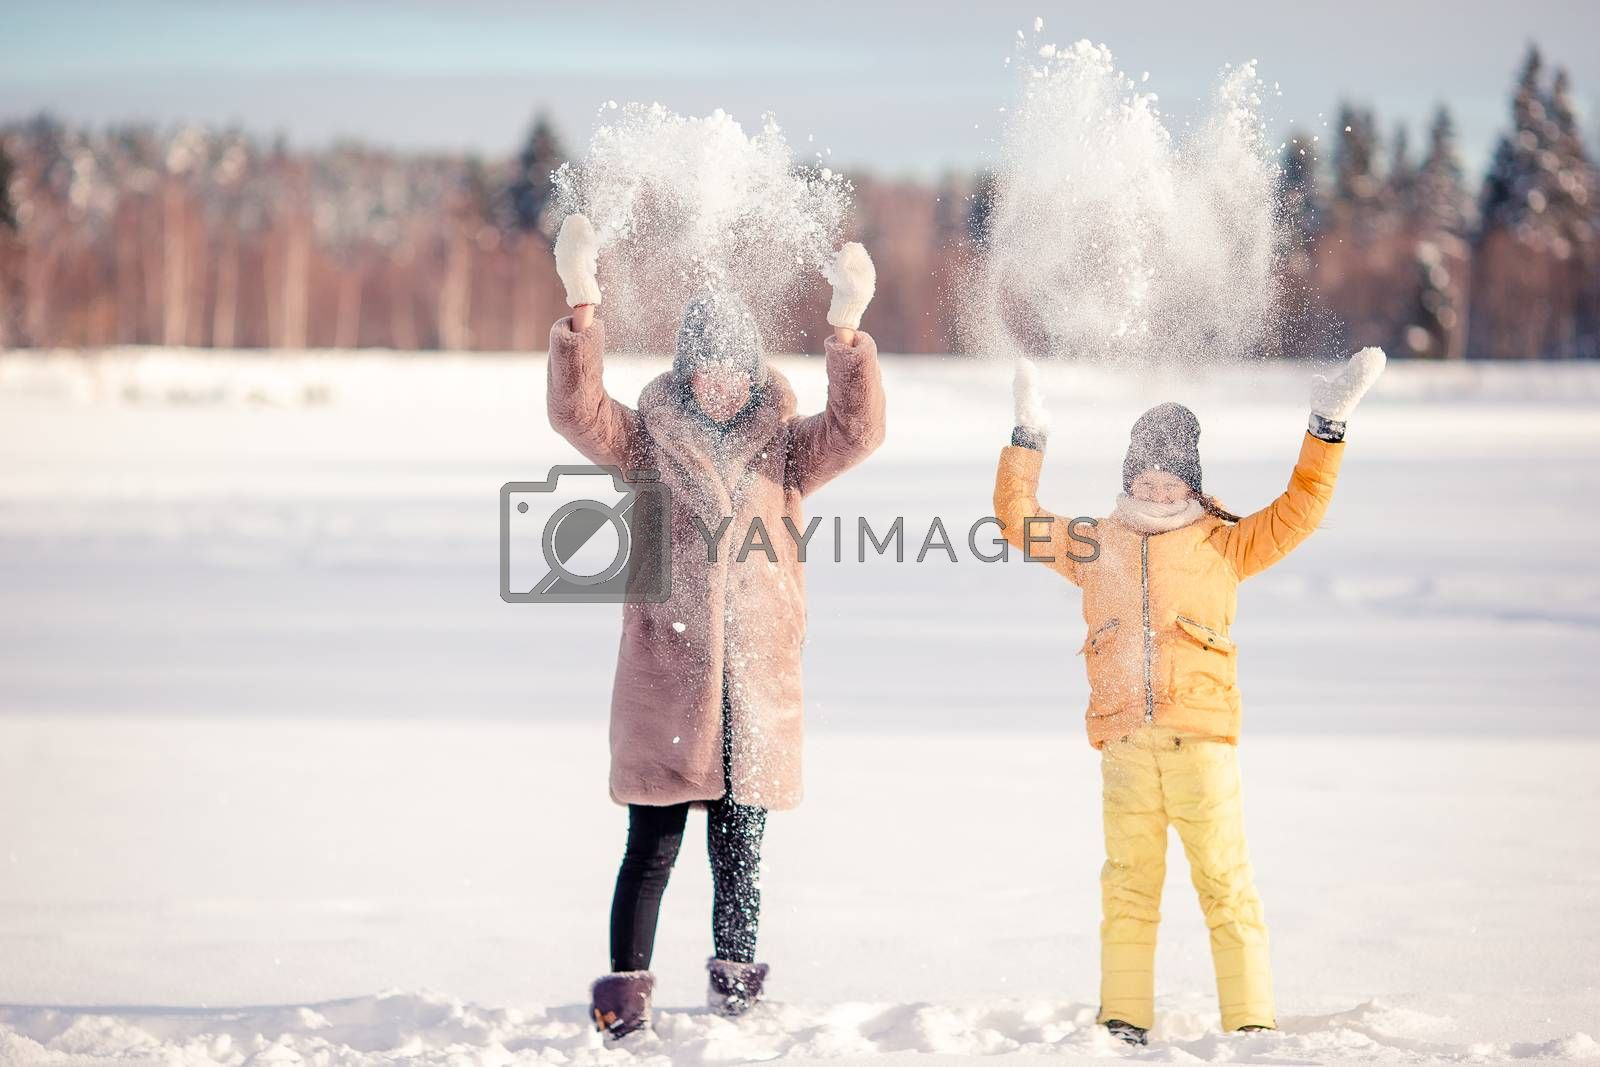 Happy family having fun outdoors in winter with snow